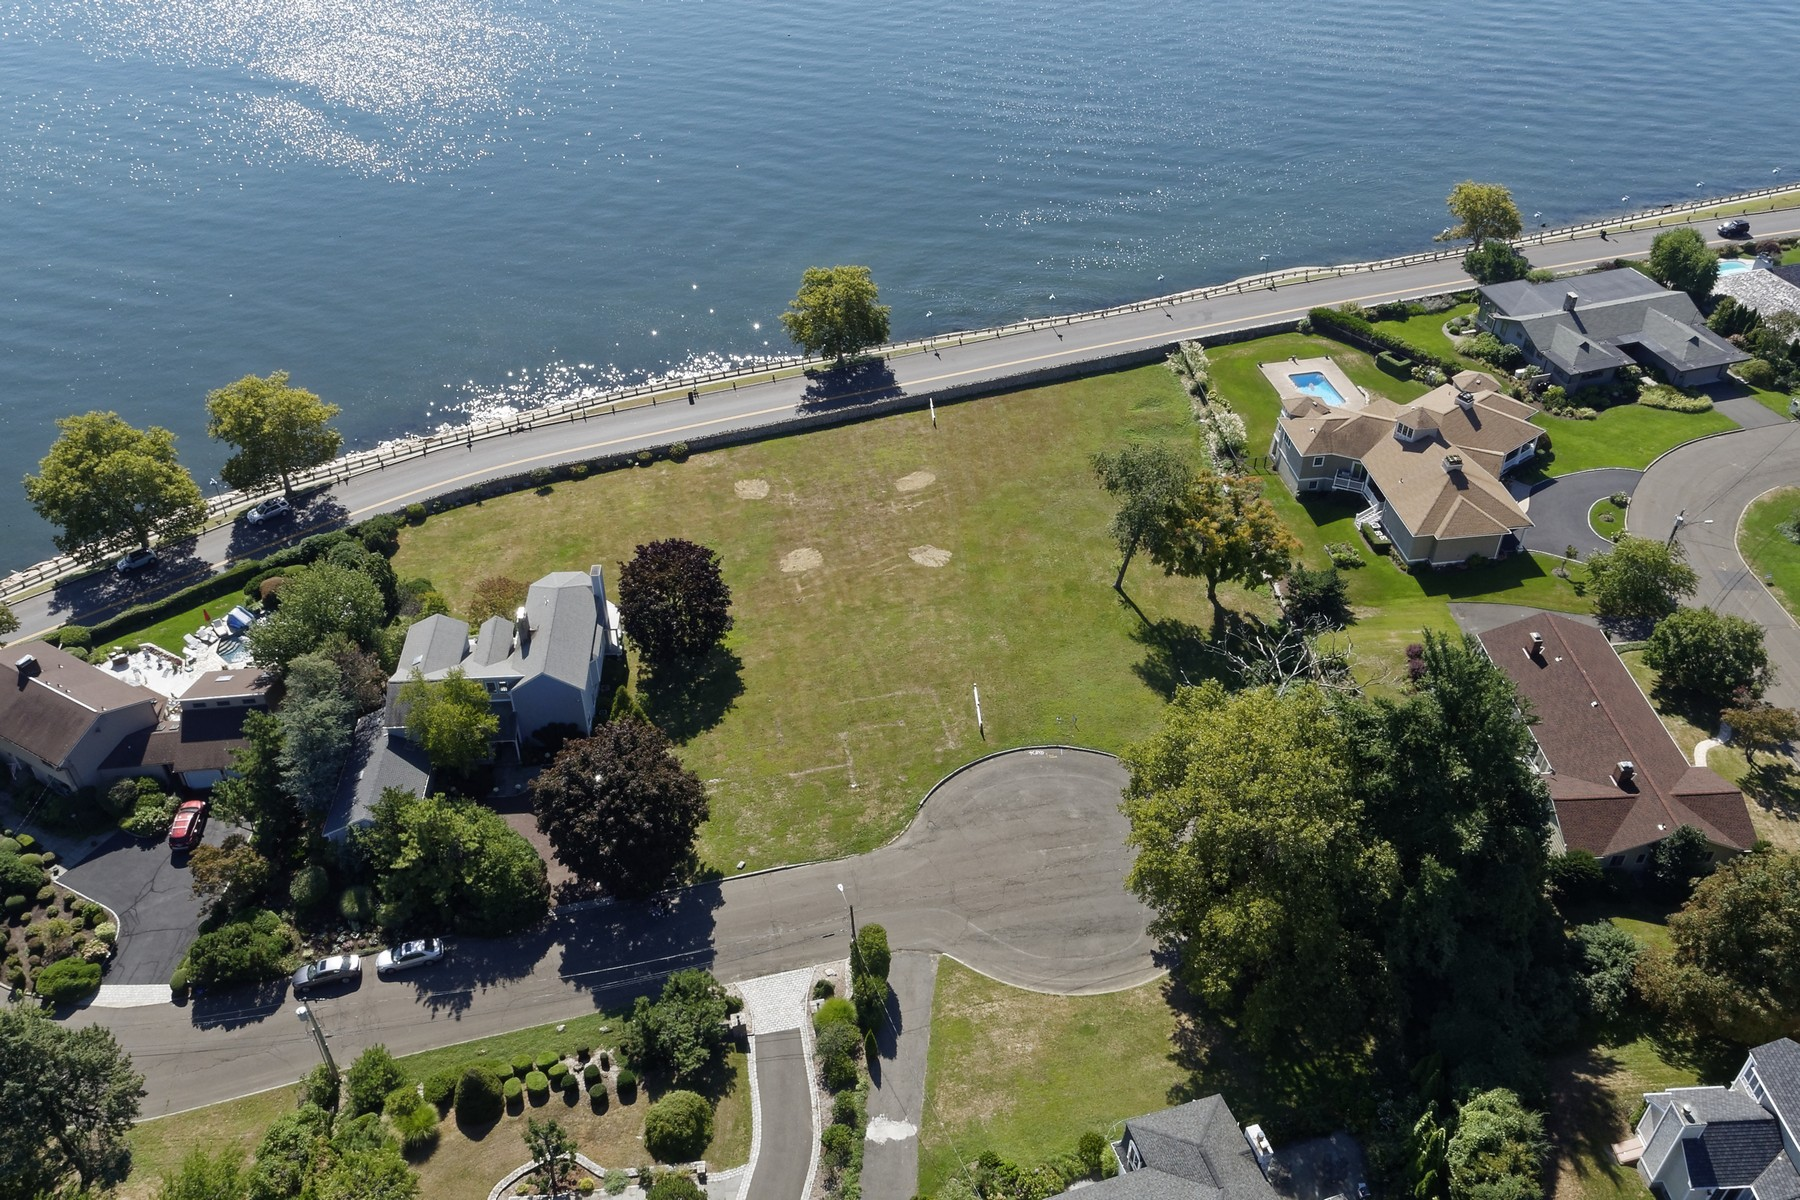 Casa Unifamiliar por un Venta en Amazing Opportunity to Build Your Waterfront Dream Home in St. Mary's by the Sea 69 Armitage Drive Bridgeport, Connecticut, 06605 Estados Unidos